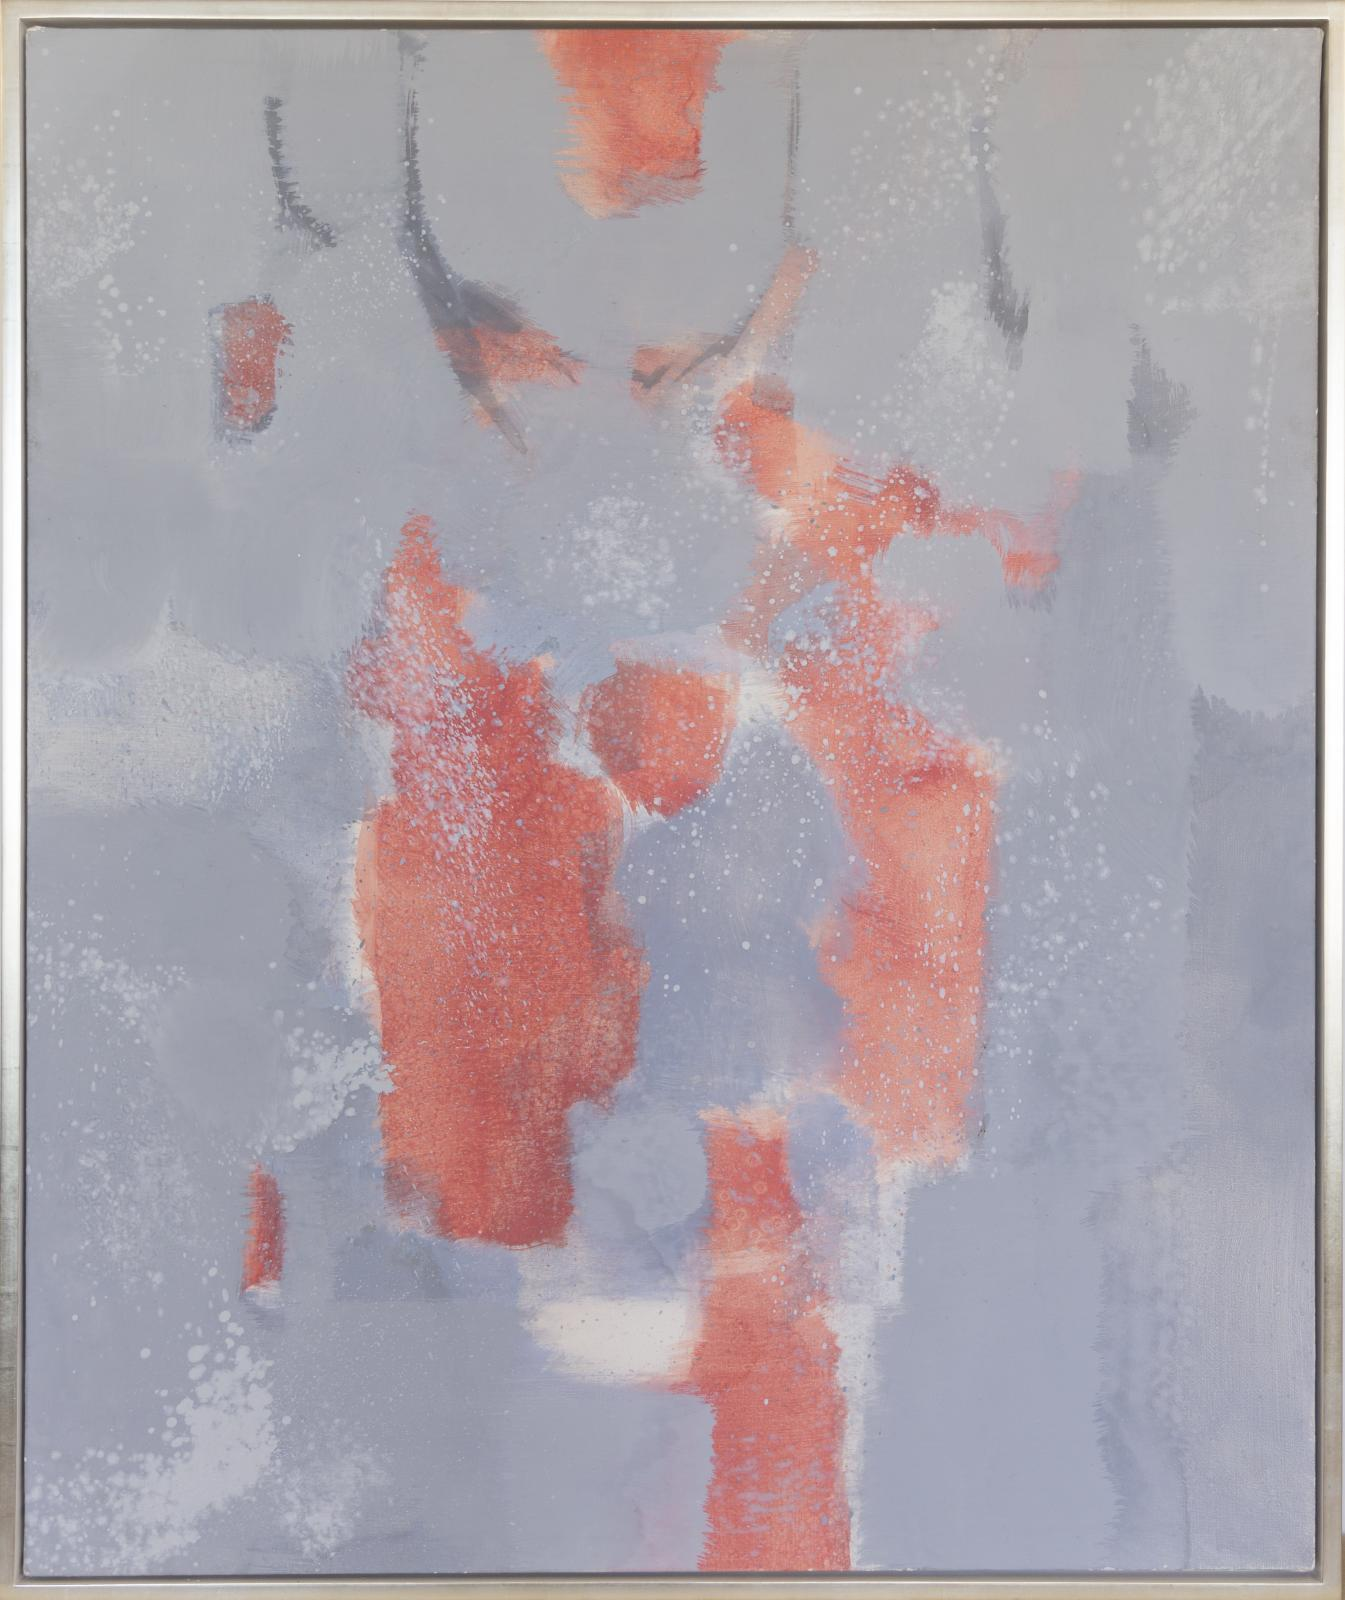 Untitled (Red, Gray) #5